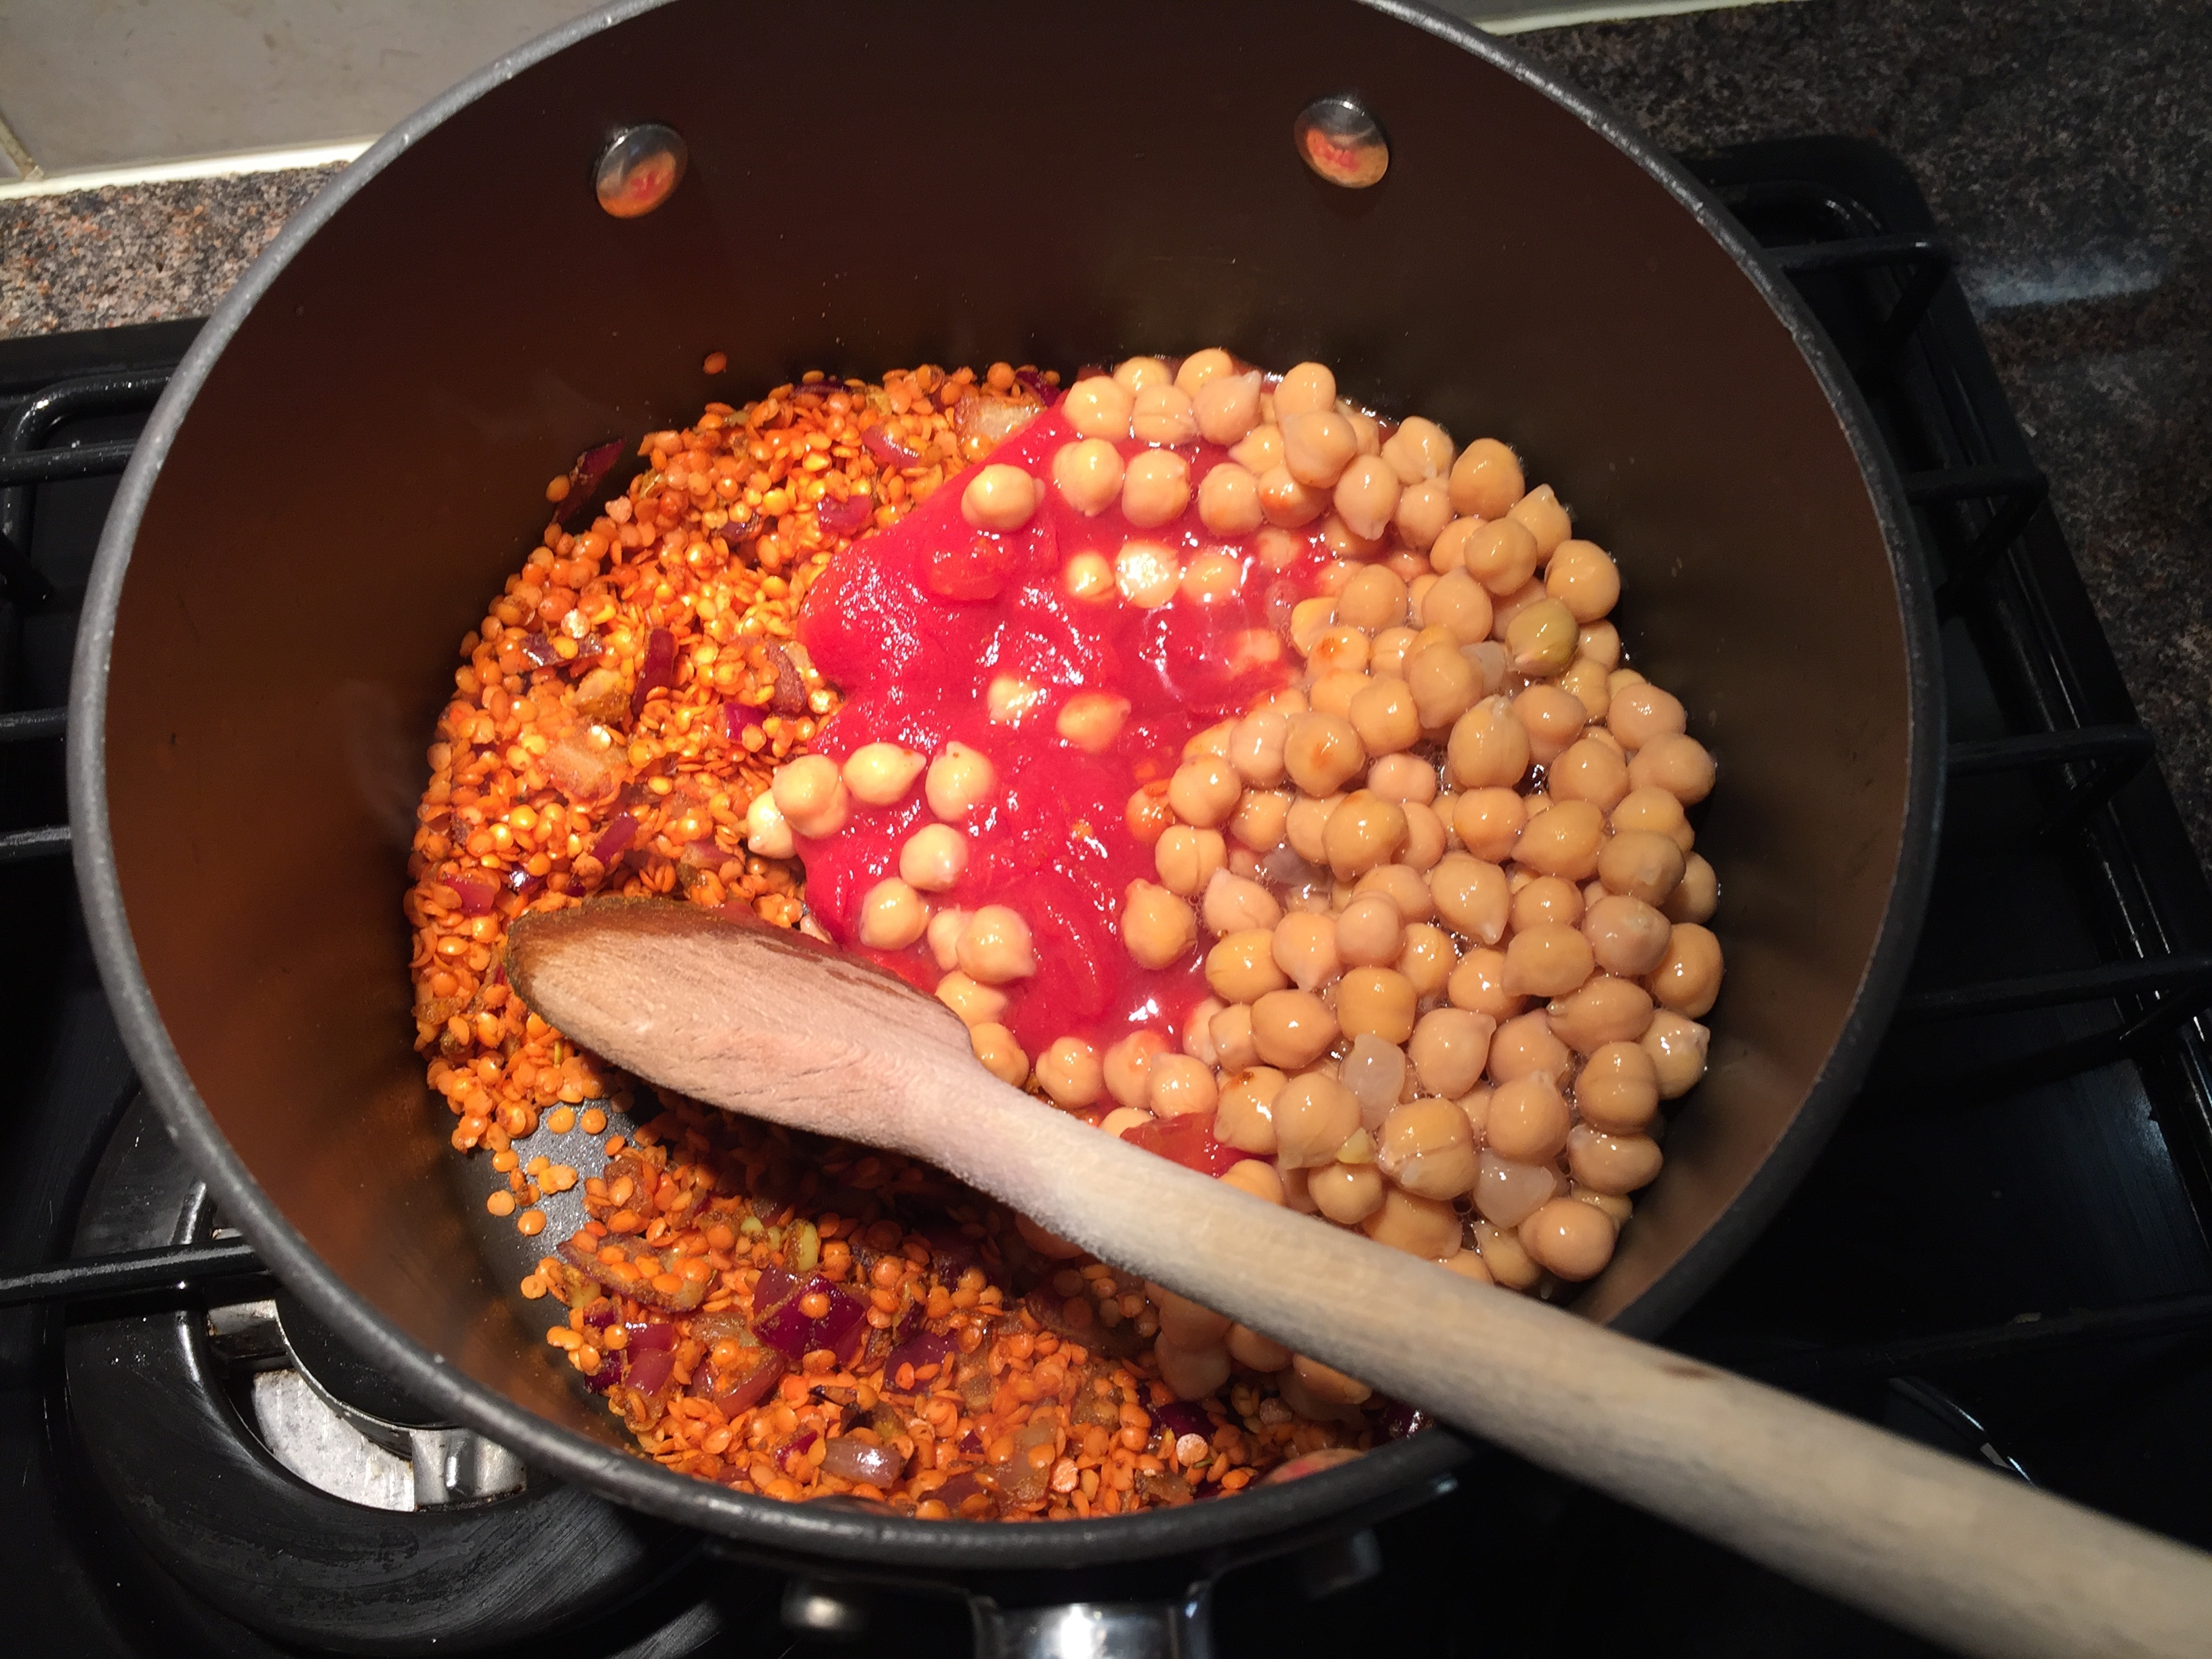 With the chickpeas and tomatoes